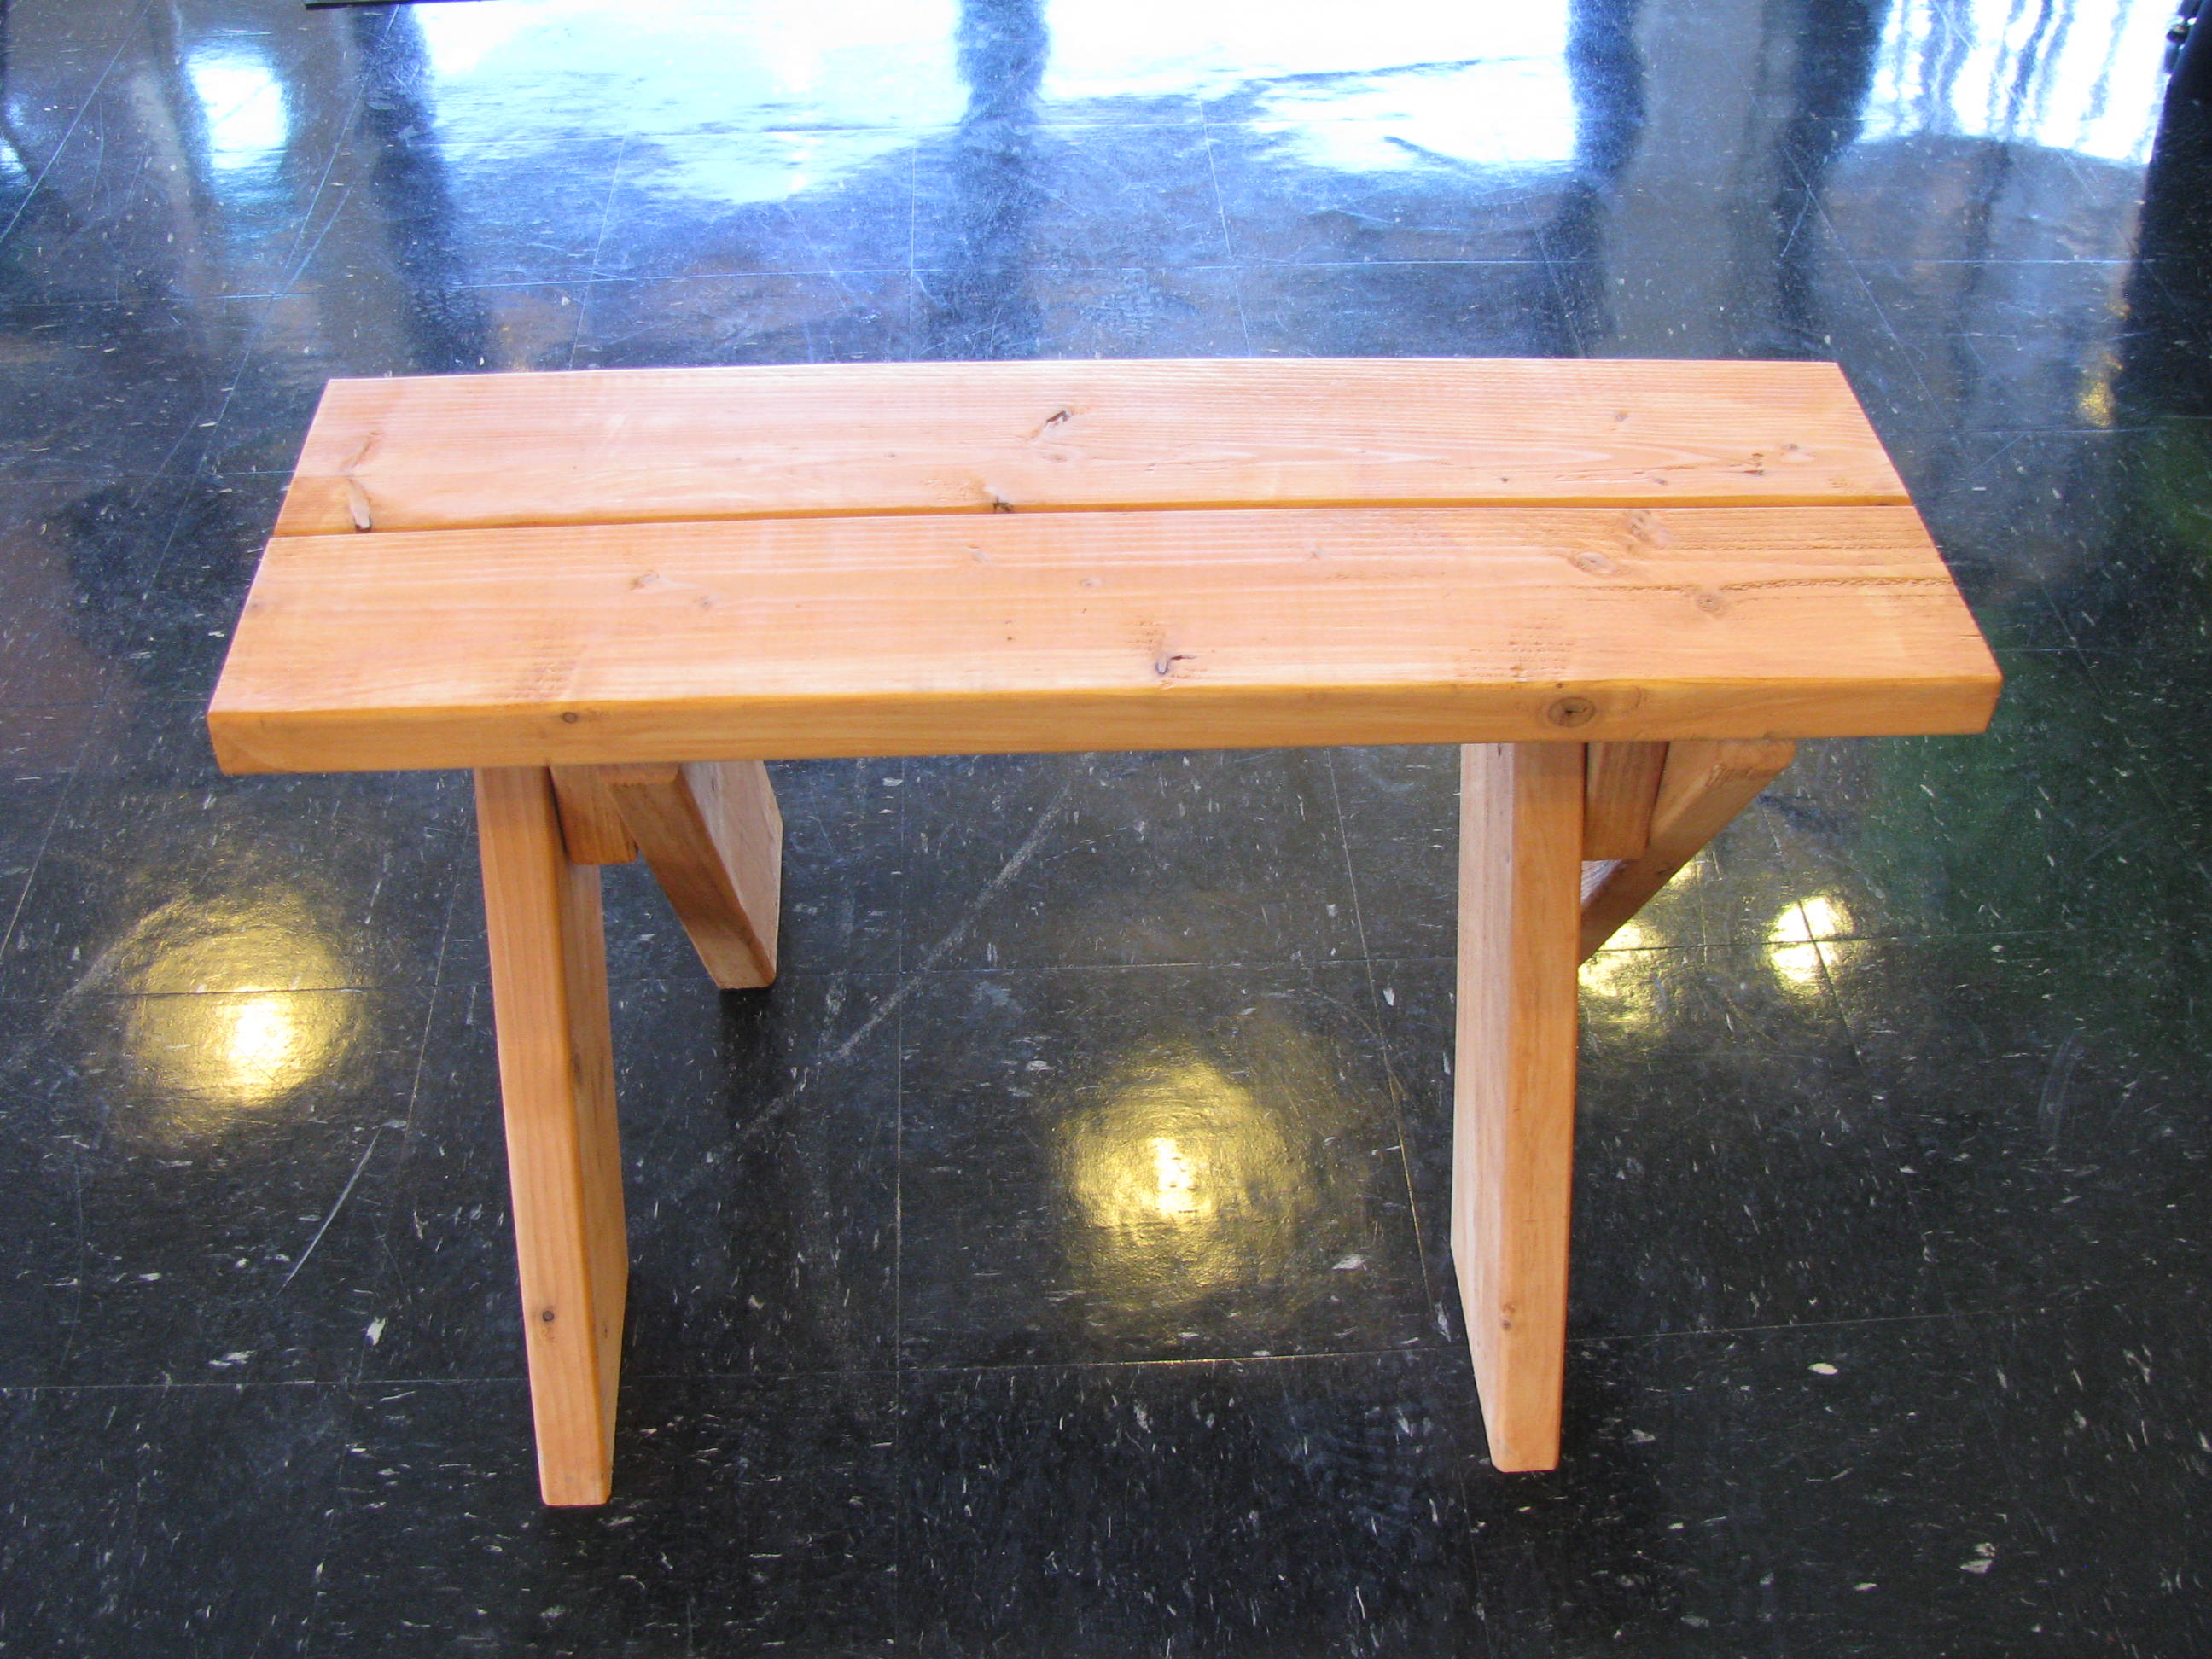 bench rates request available seth vary churchill farmbench furniture delivery img upon will farm